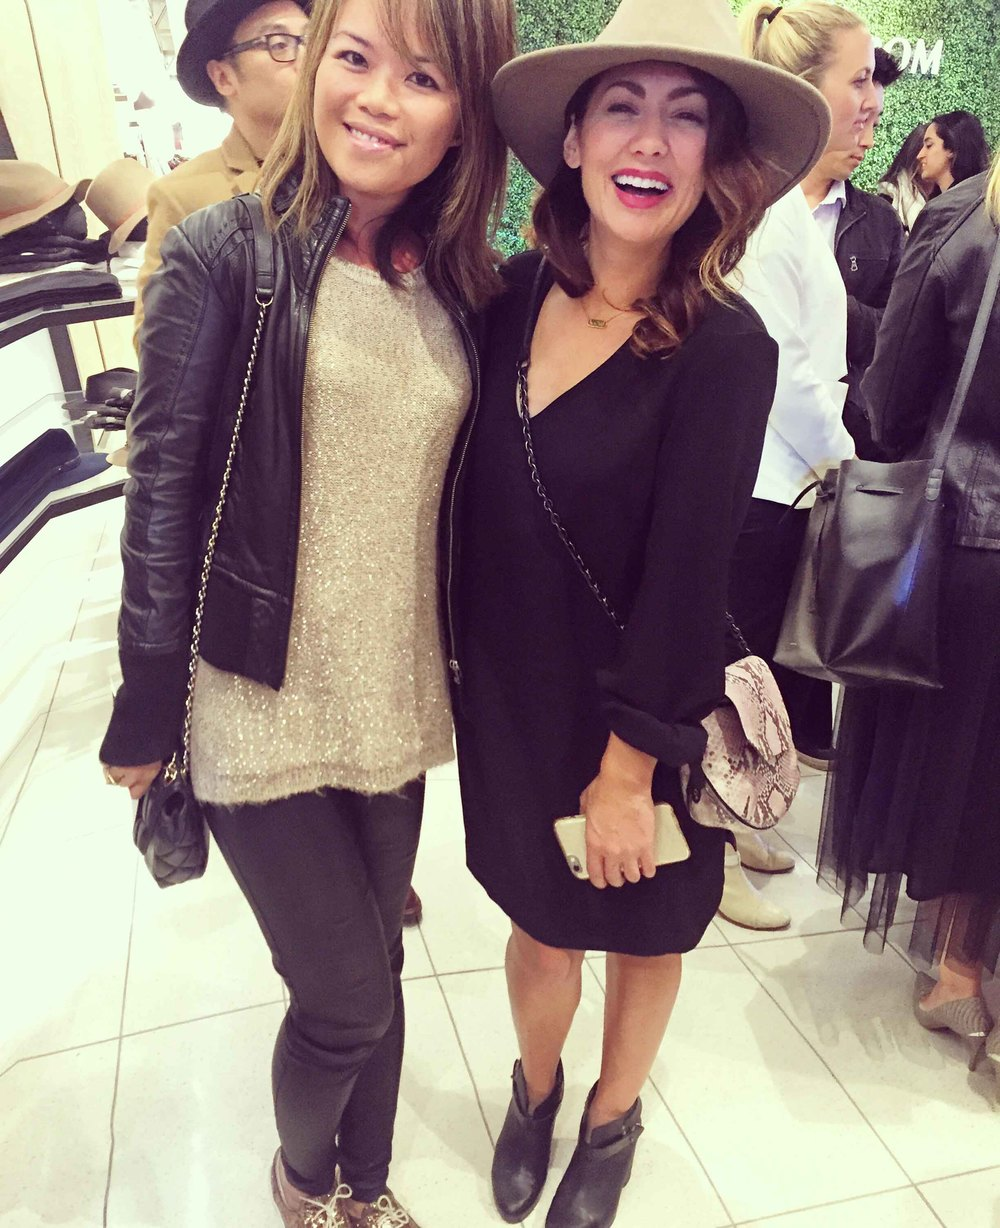 with this great gal, jillian harris.